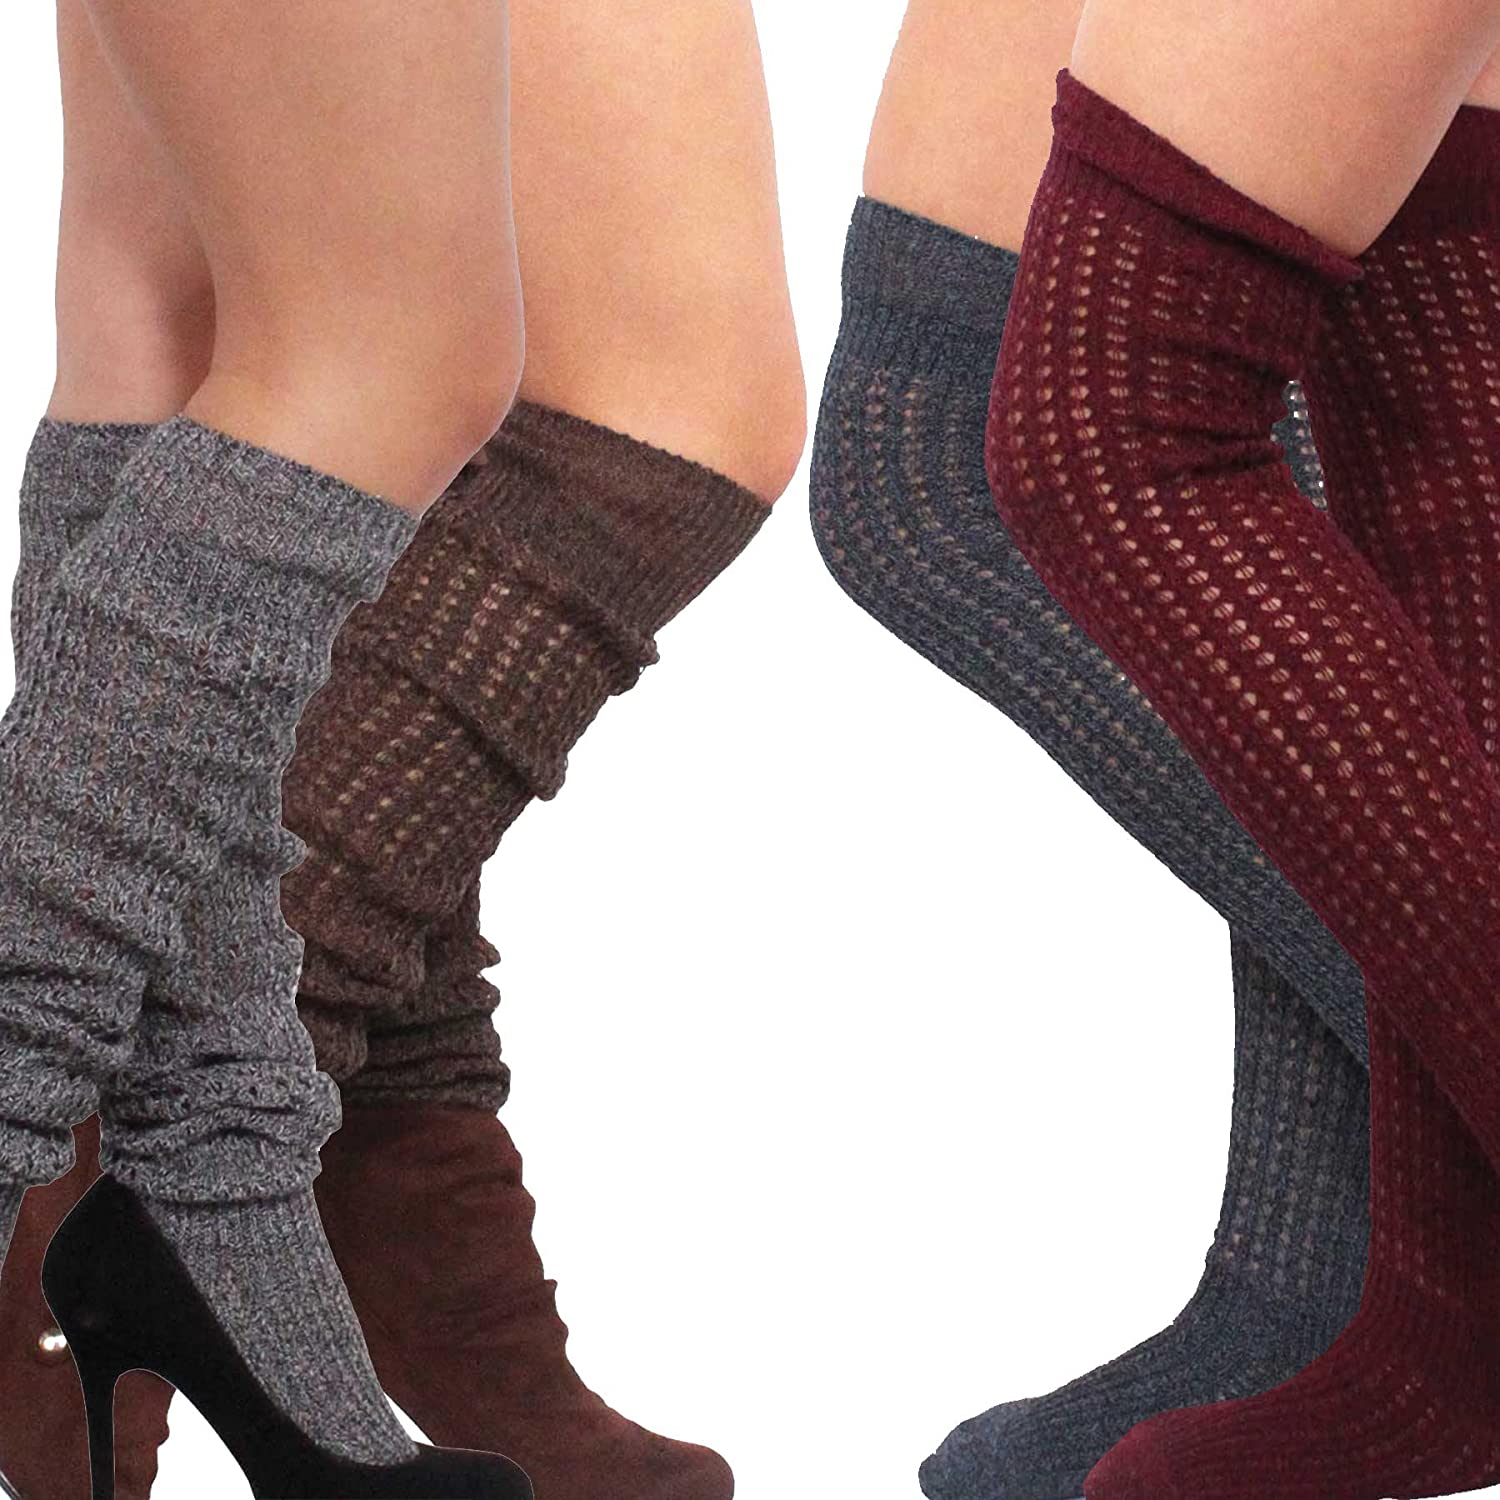 Teehee Womens Fashion Cotton Over The Knee Multi Pair Pack